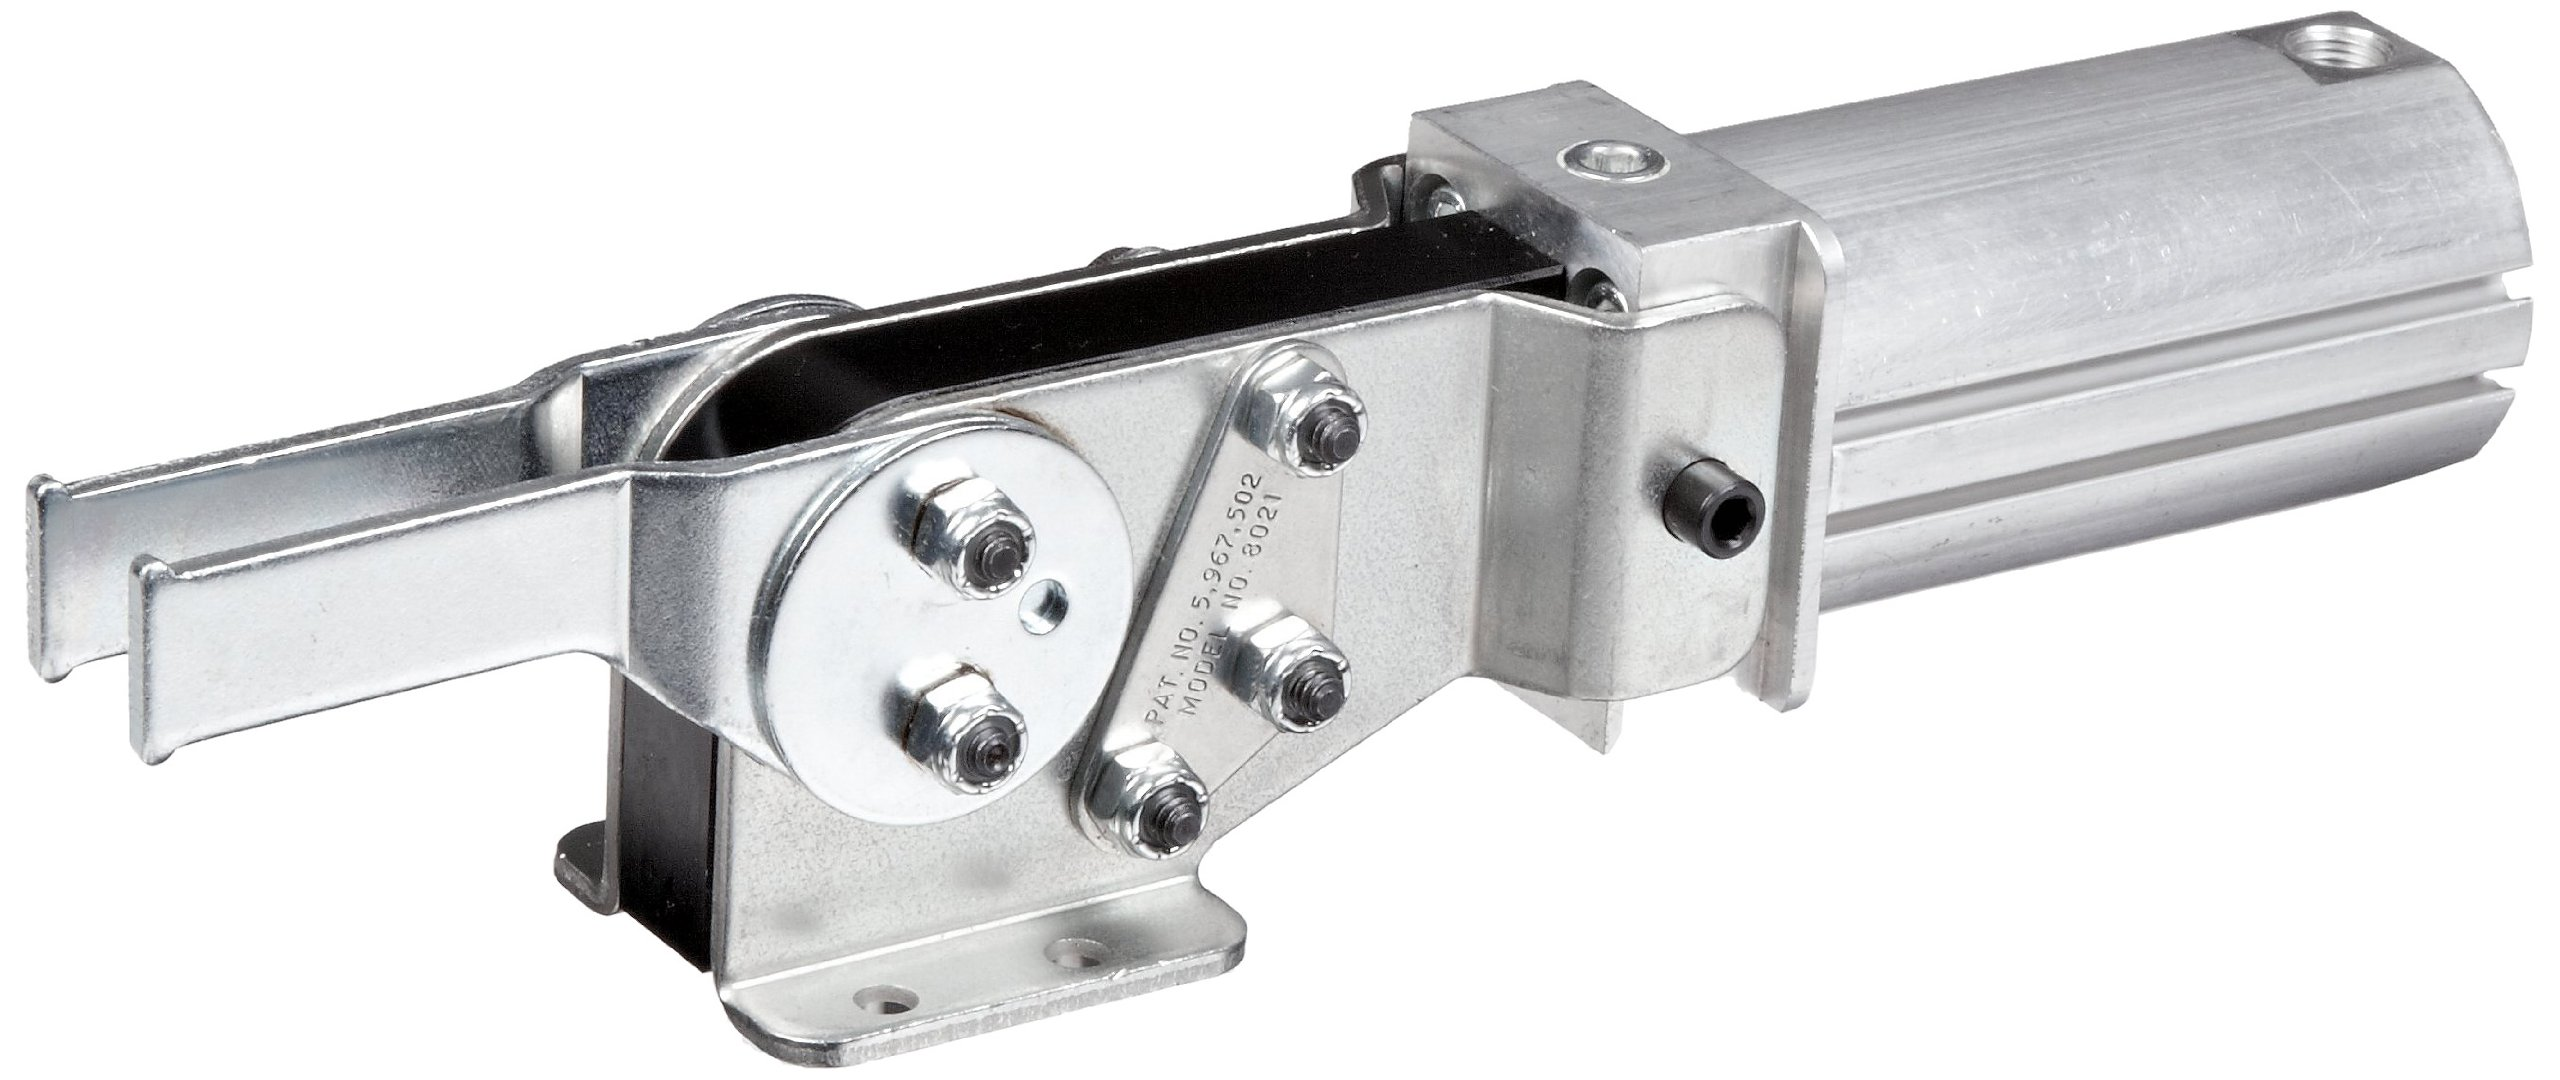 DE-STA-CO 8021 Enclosed Pneumatic Hold Down Action Clamp by De-Sta-Co